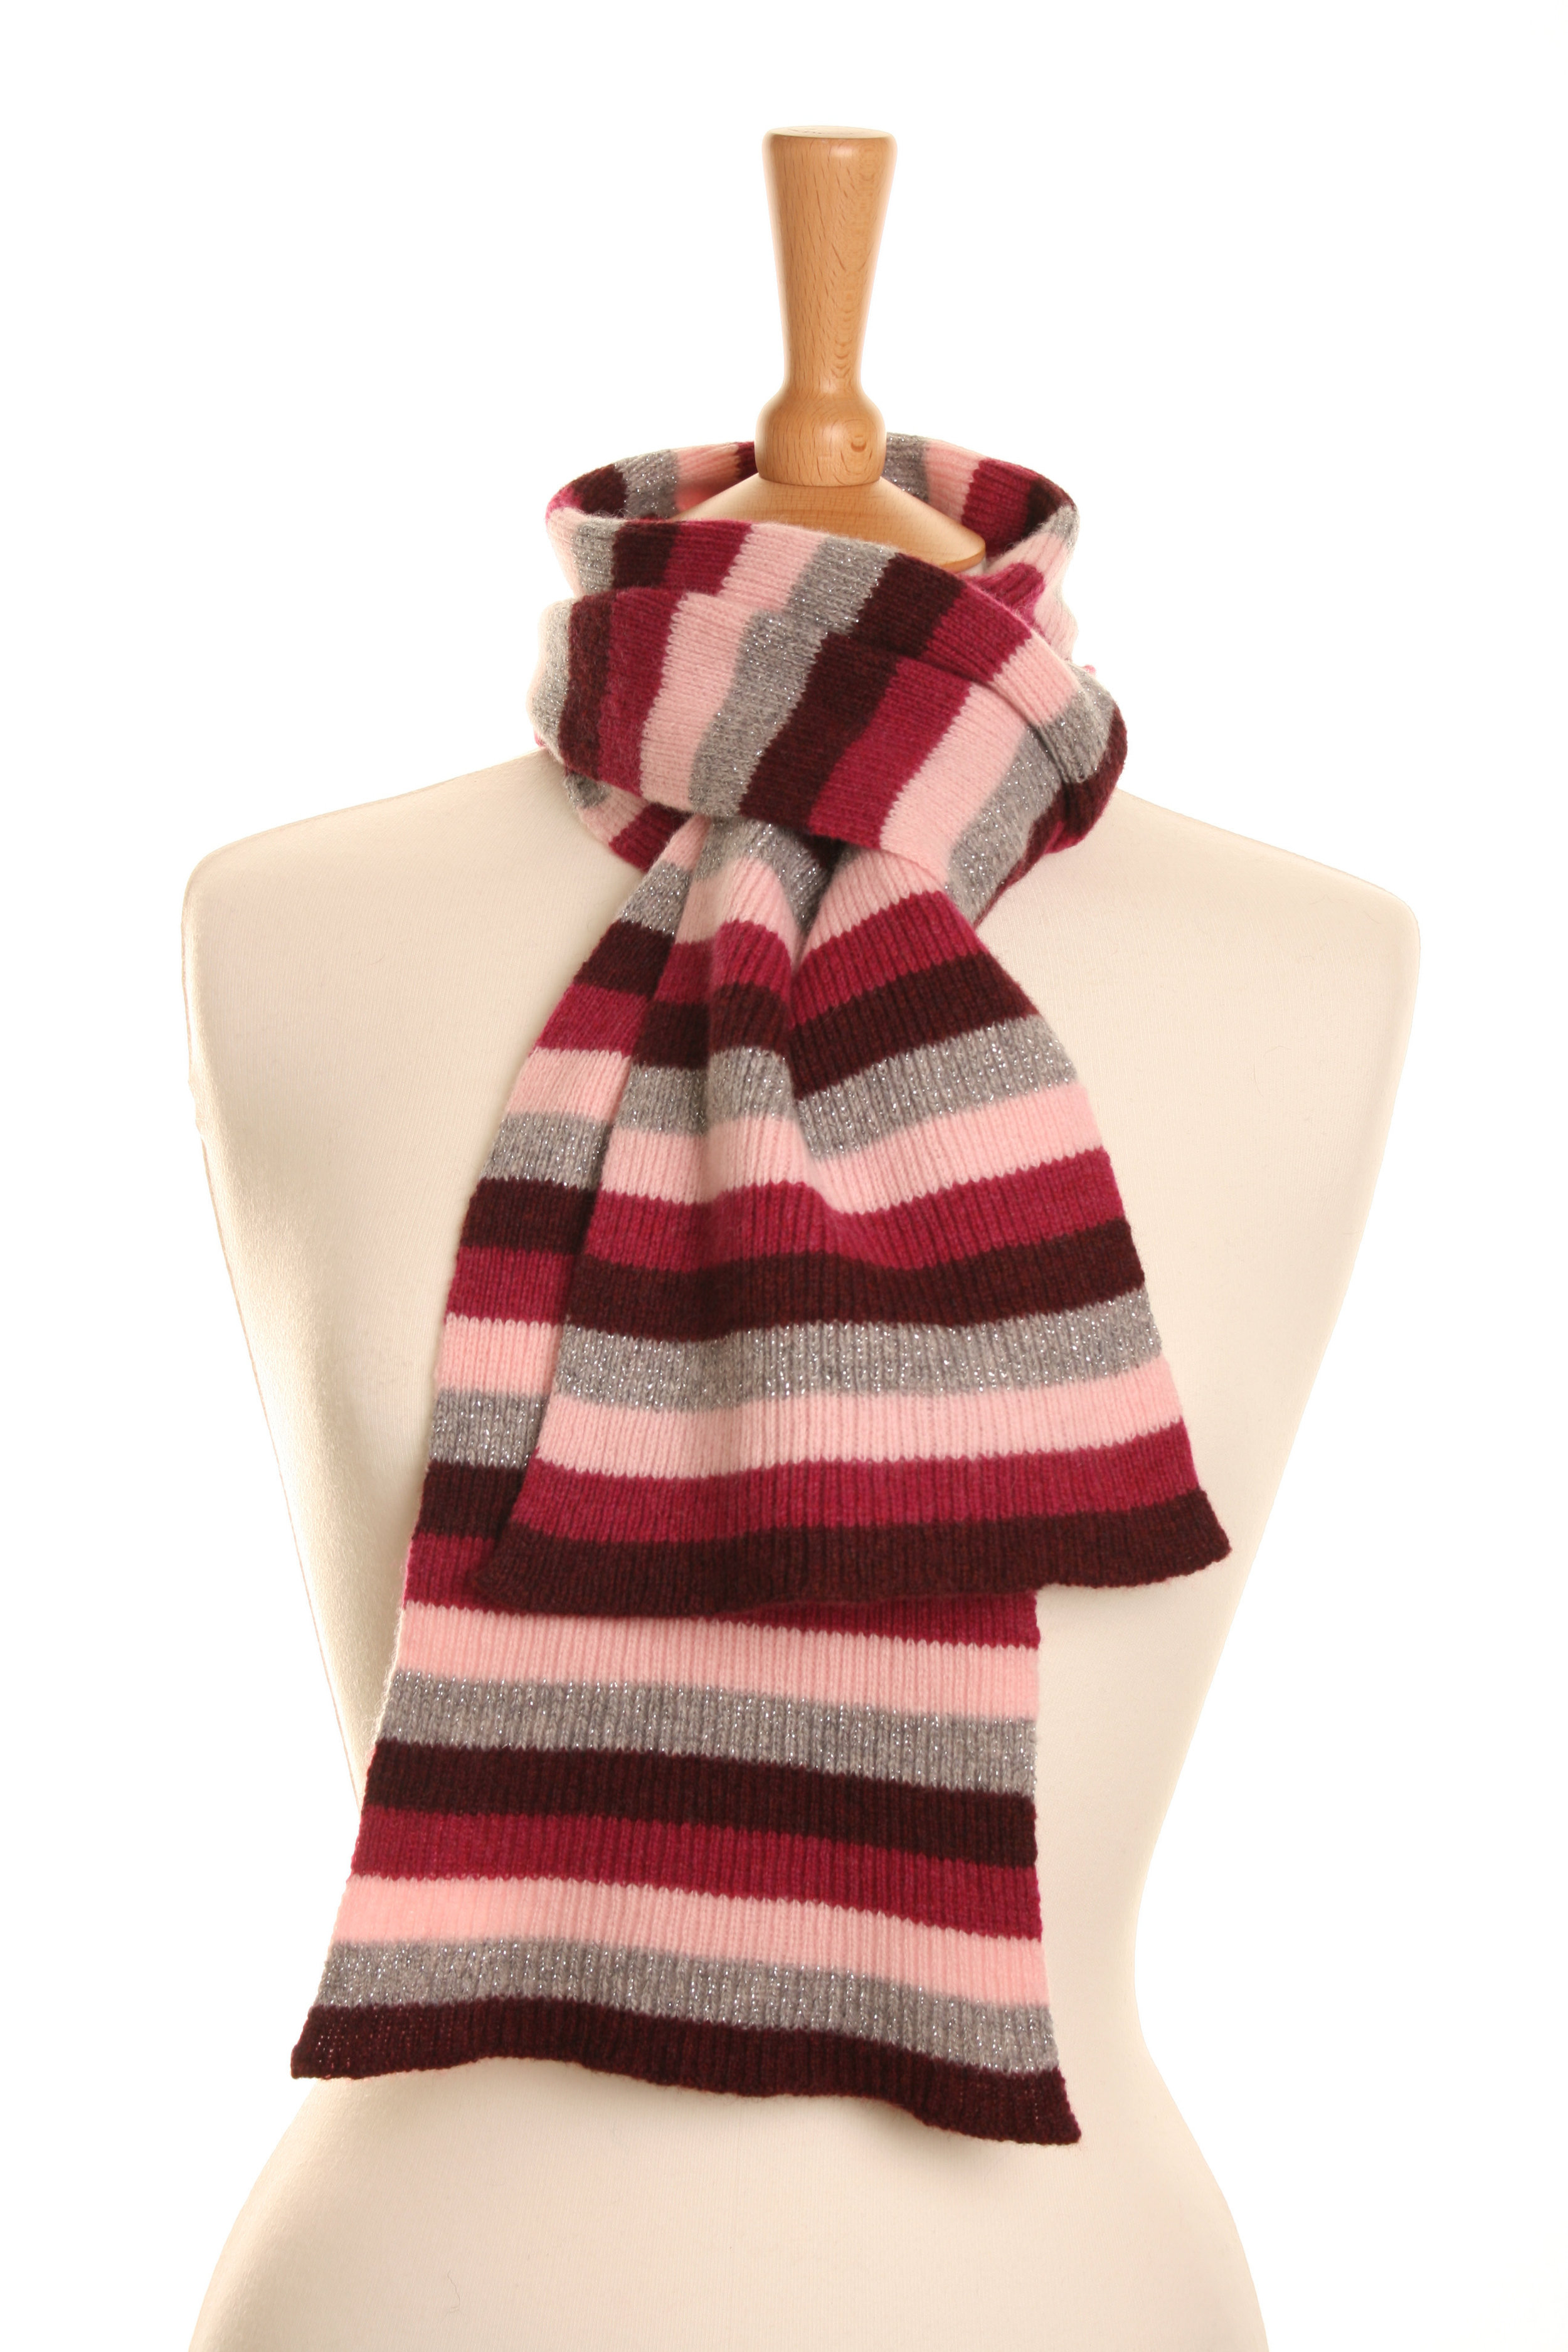 Stripy Luxe Pink Scarf  Knitted Lambswool  £50